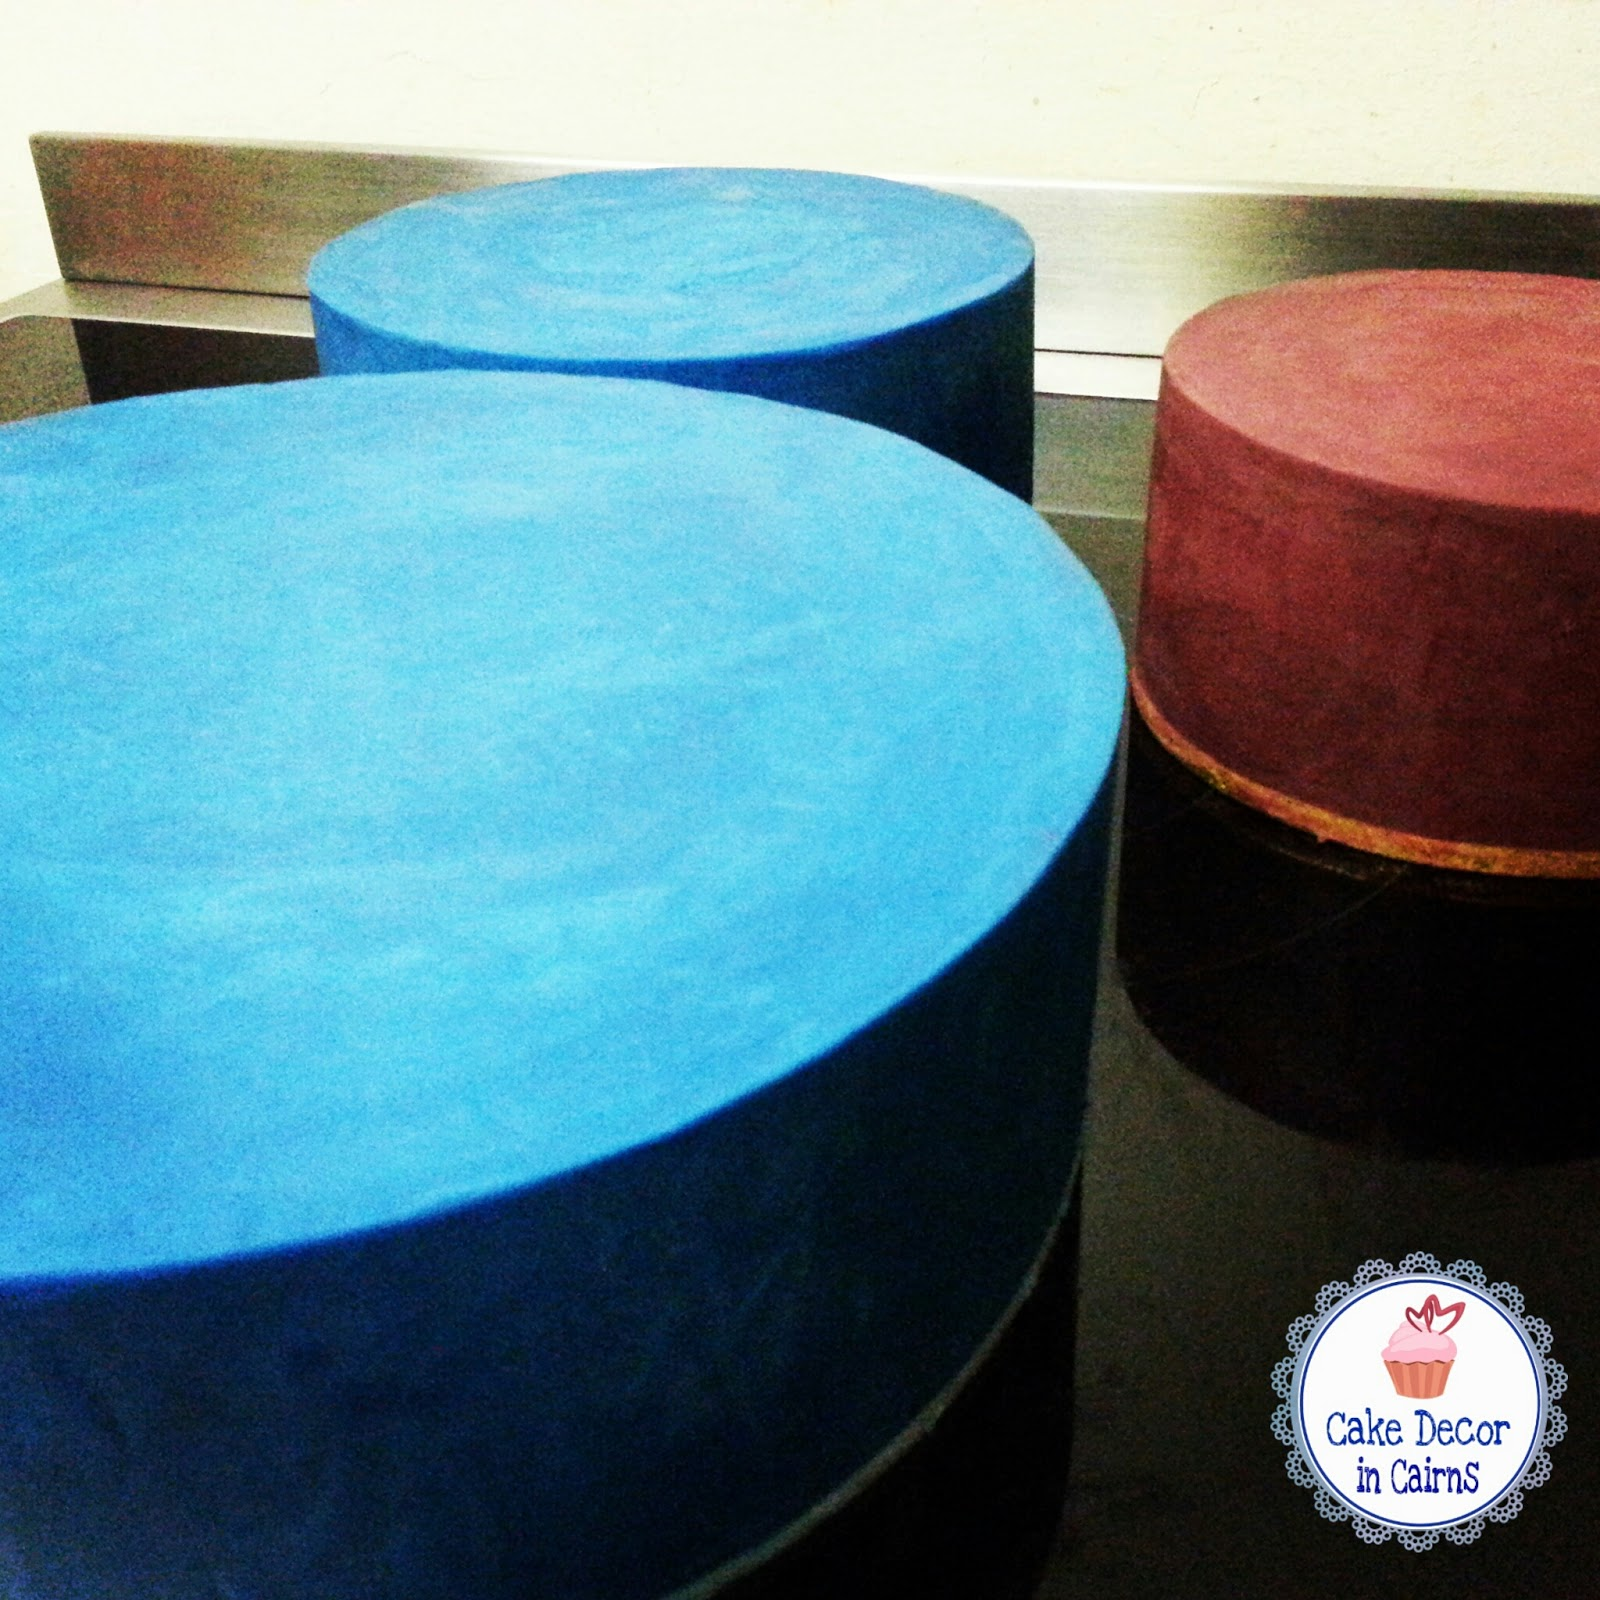 Blue and Maroon tinted / coloured / colored ganache cakes